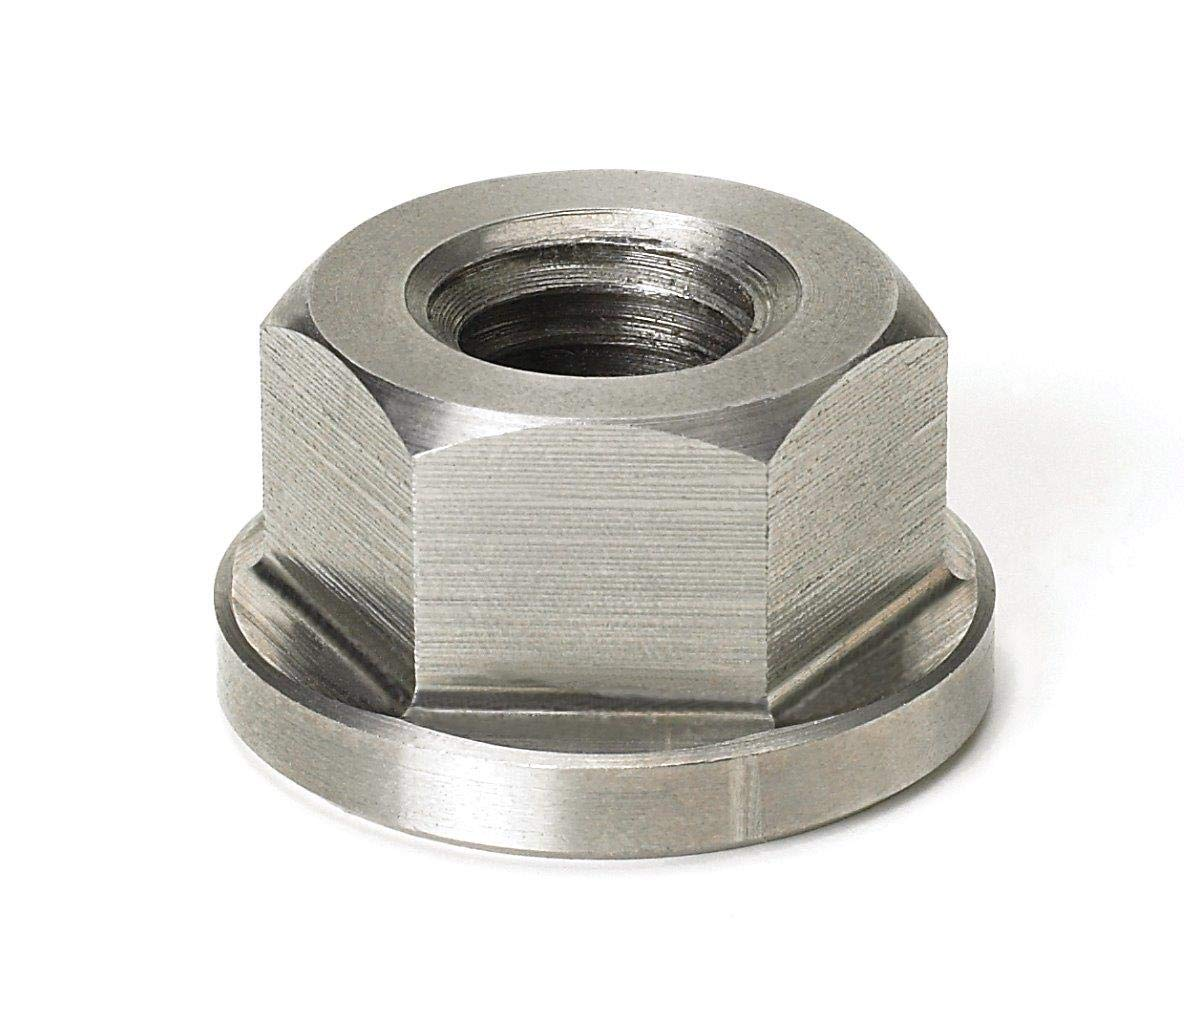 Morton Stainless Steel Flange Collar Nuts, Inch Size, 7/8-9 Thread Size